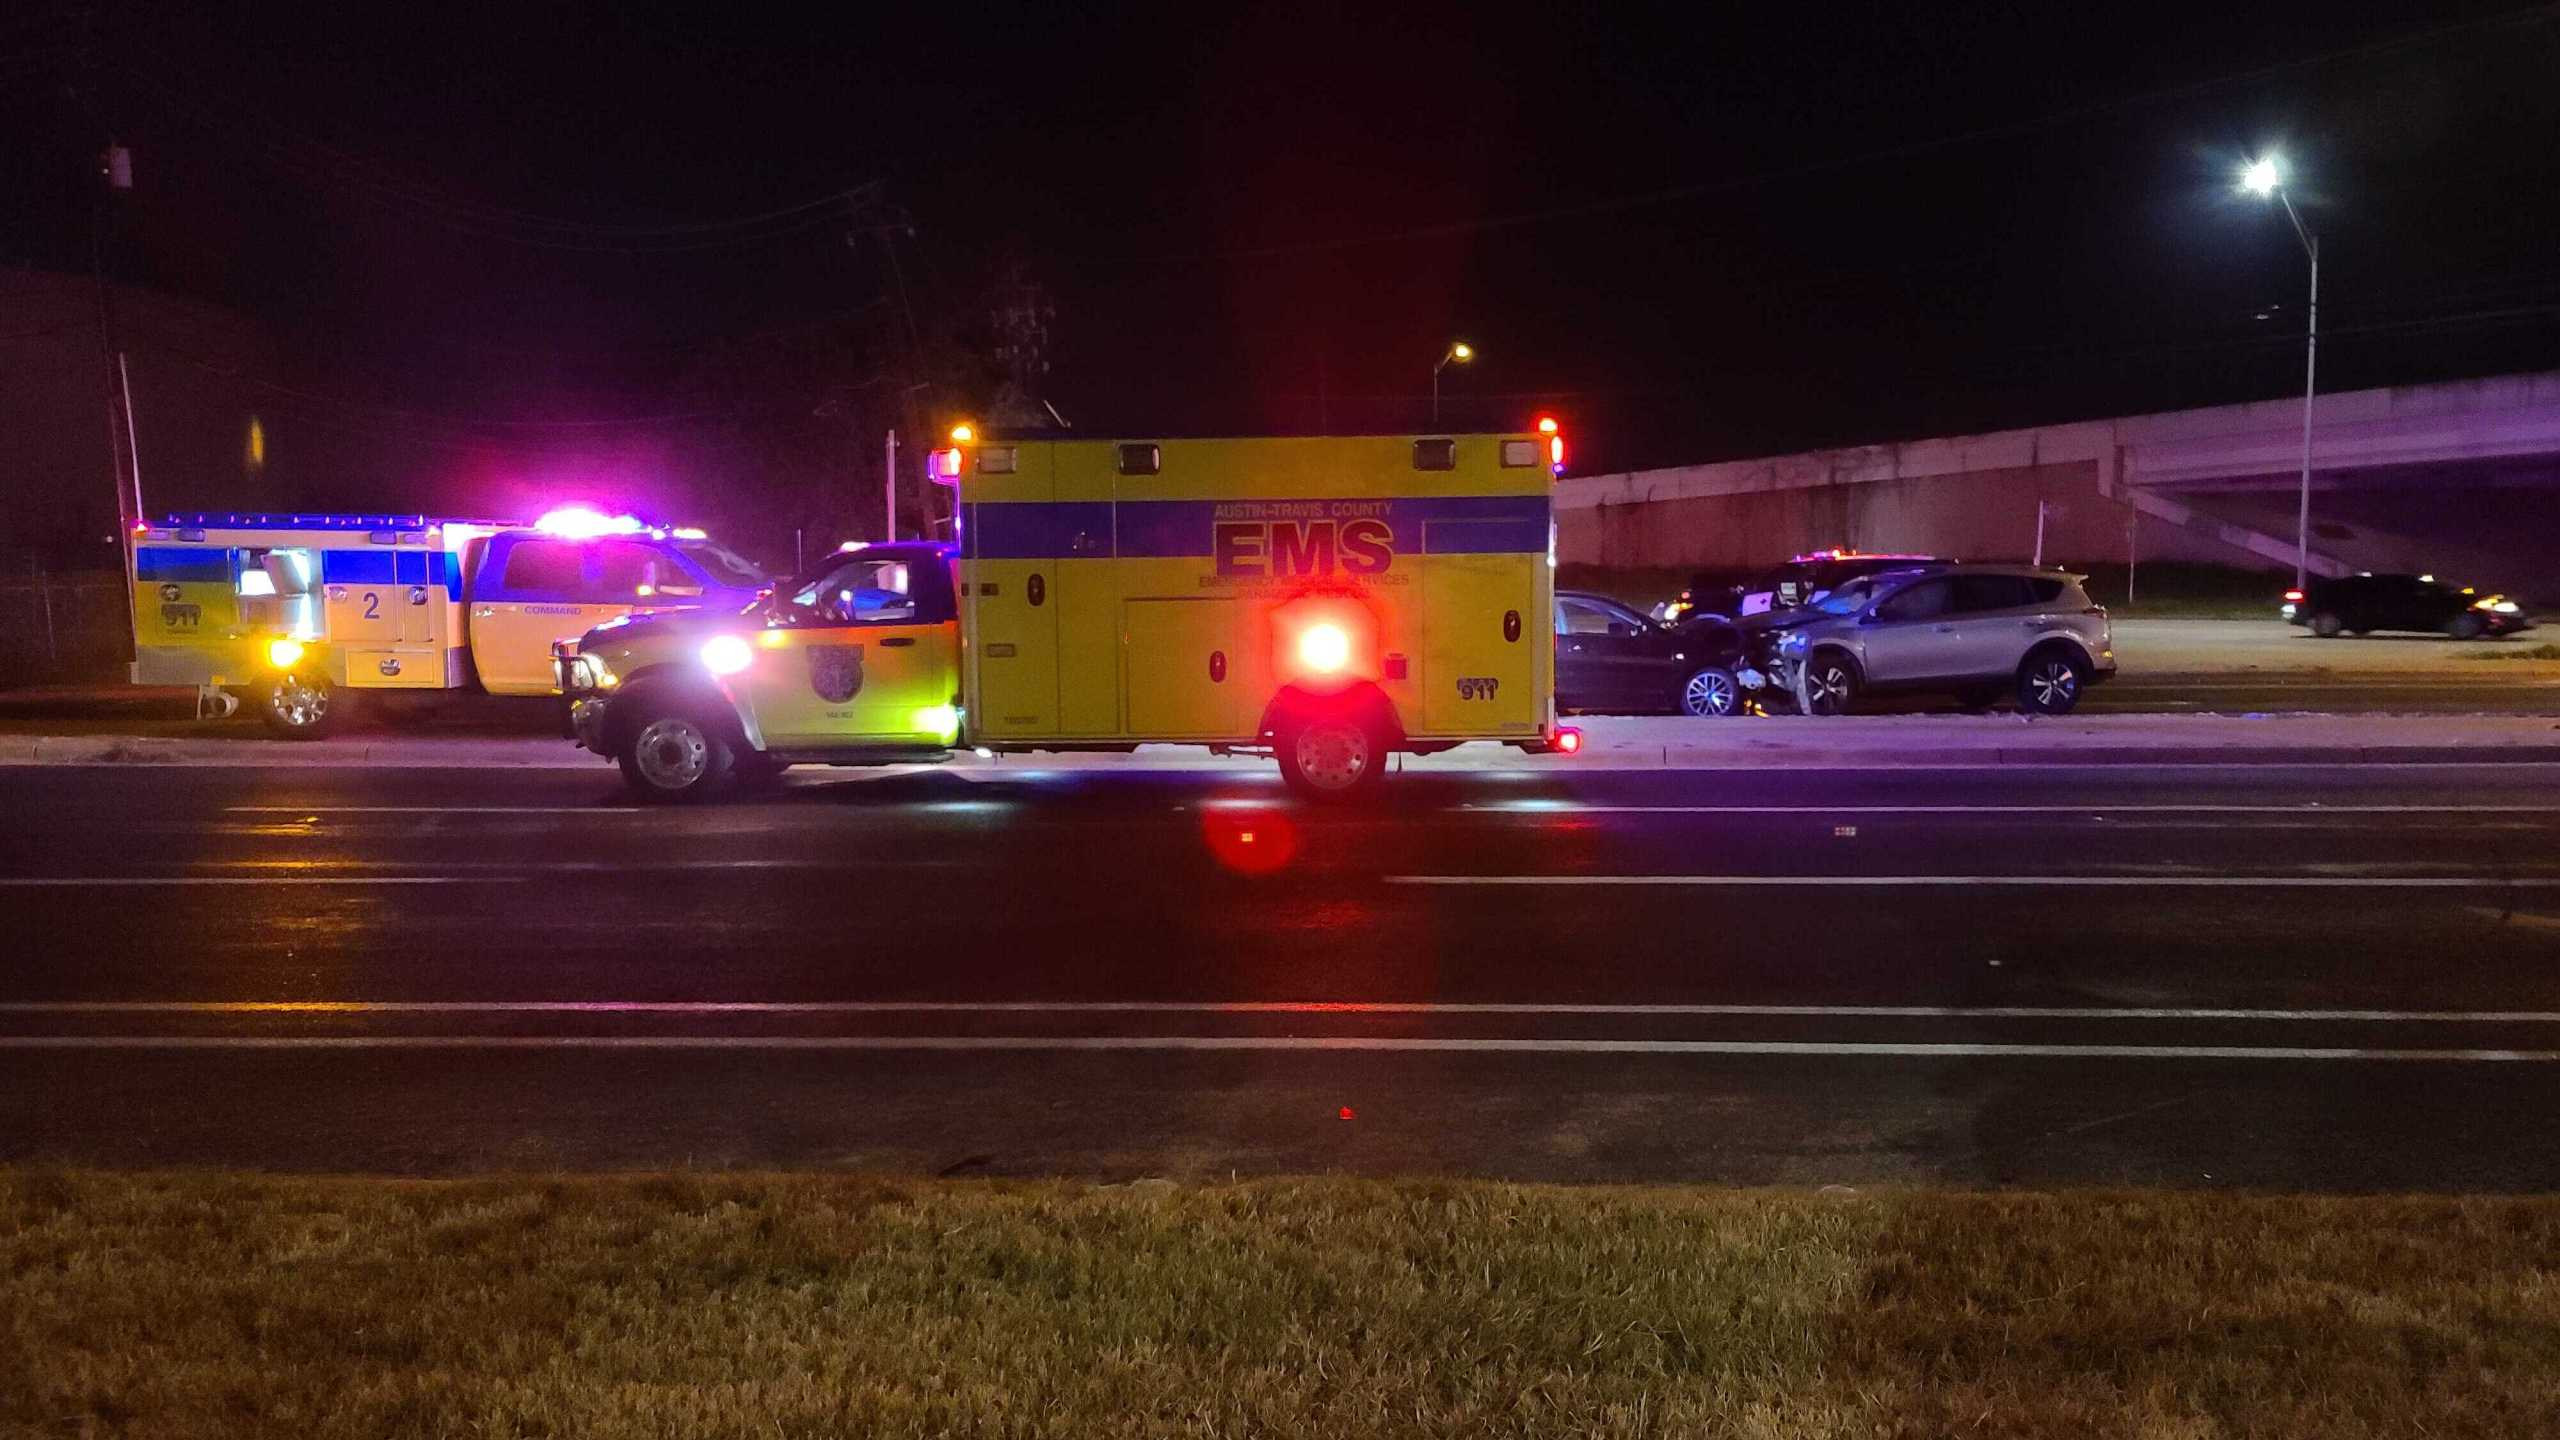 One person is dead and two others were taken to the hospital after a multi-vehicle crash in northwest Austin Sept. 7, 2021 (KXAN Photo/Andrew Choat)